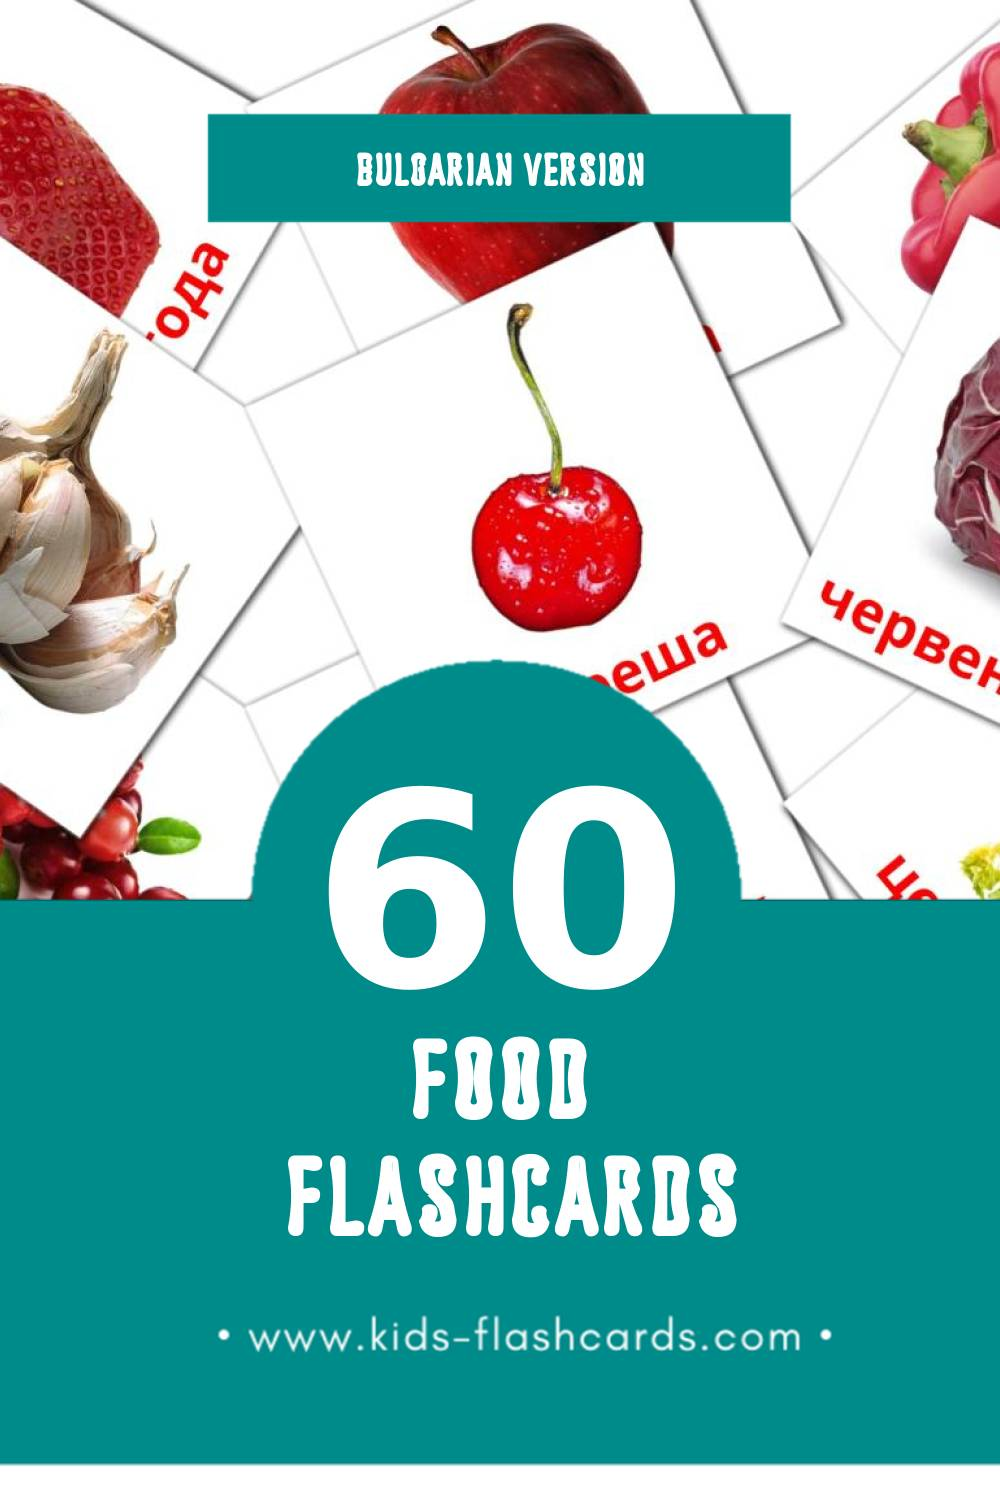 Visual Храна Flashcards for Toddlers (60 cards in Bulgarian)